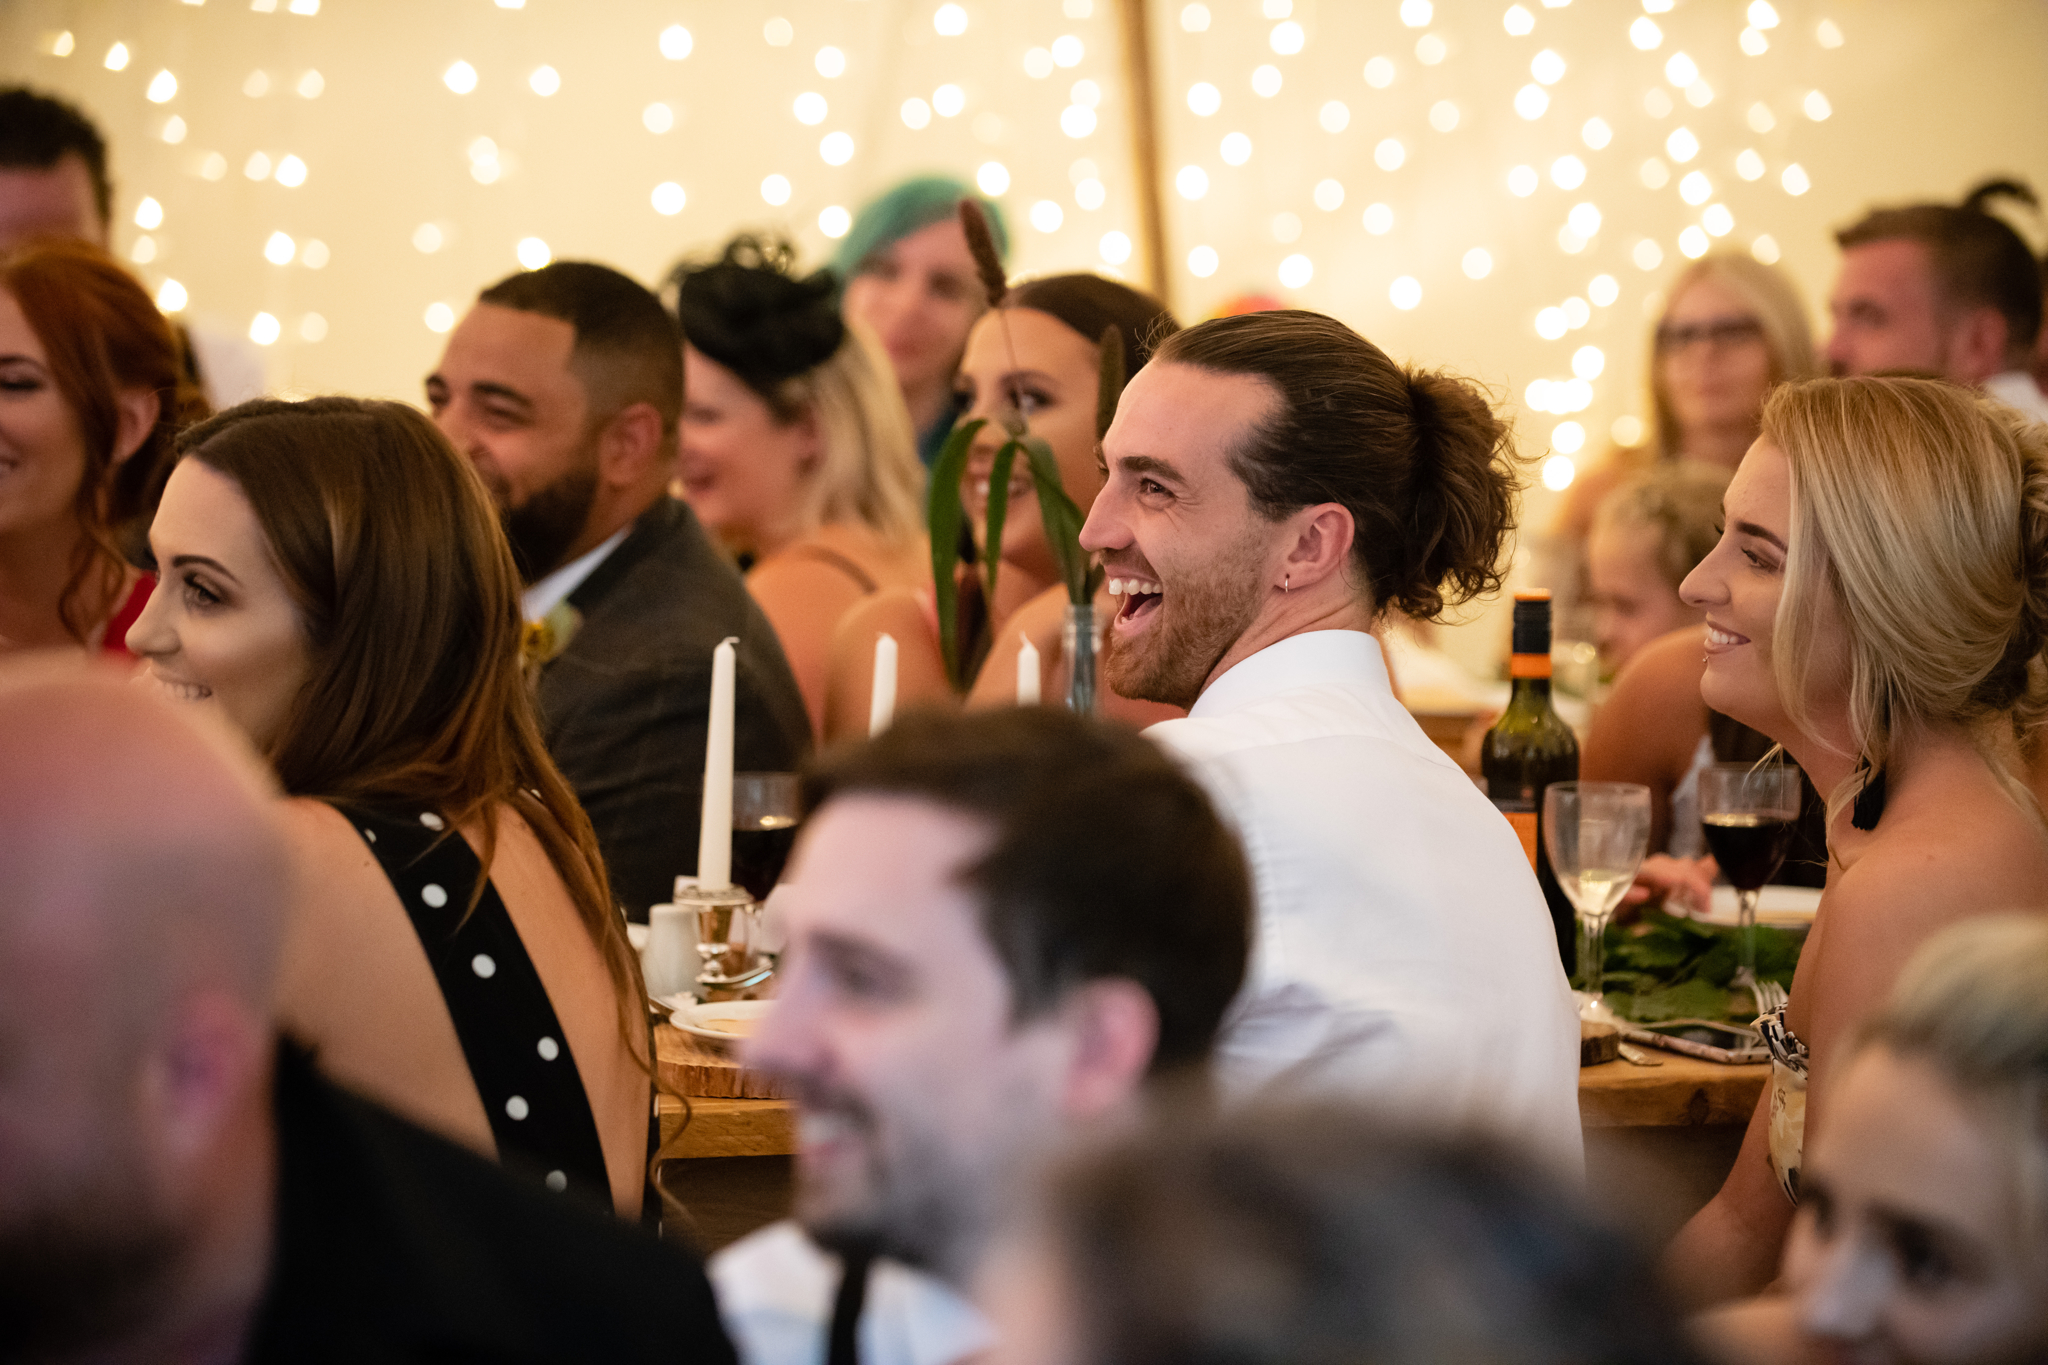 A guest laughing during the speeches